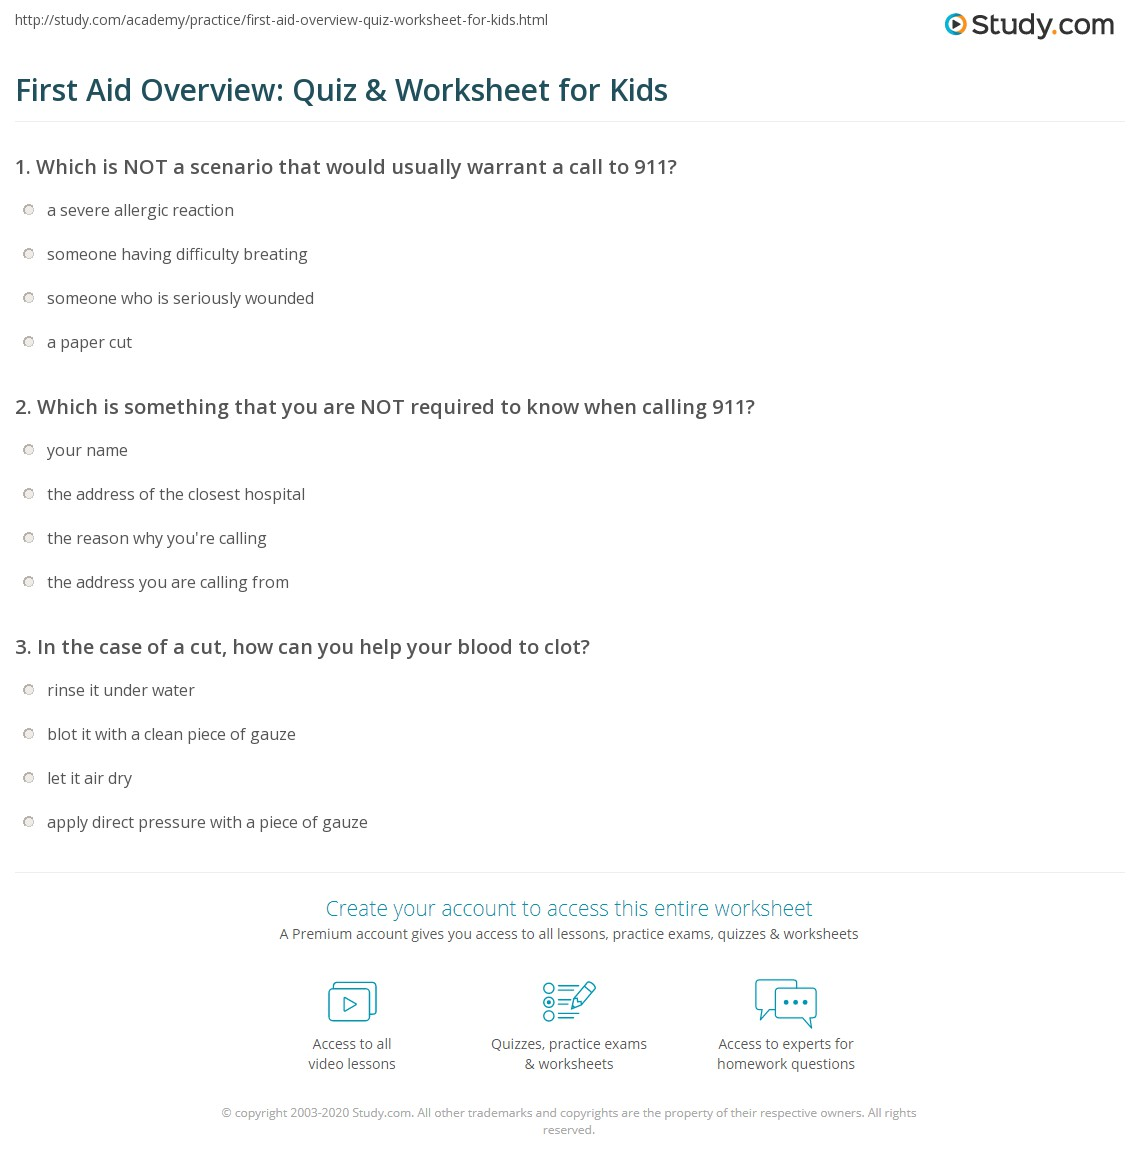 Free Worksheet First Aid Worksheets For Kids first aid overview quiz worksheet for kids study com print lesson facts tips safety worksheet